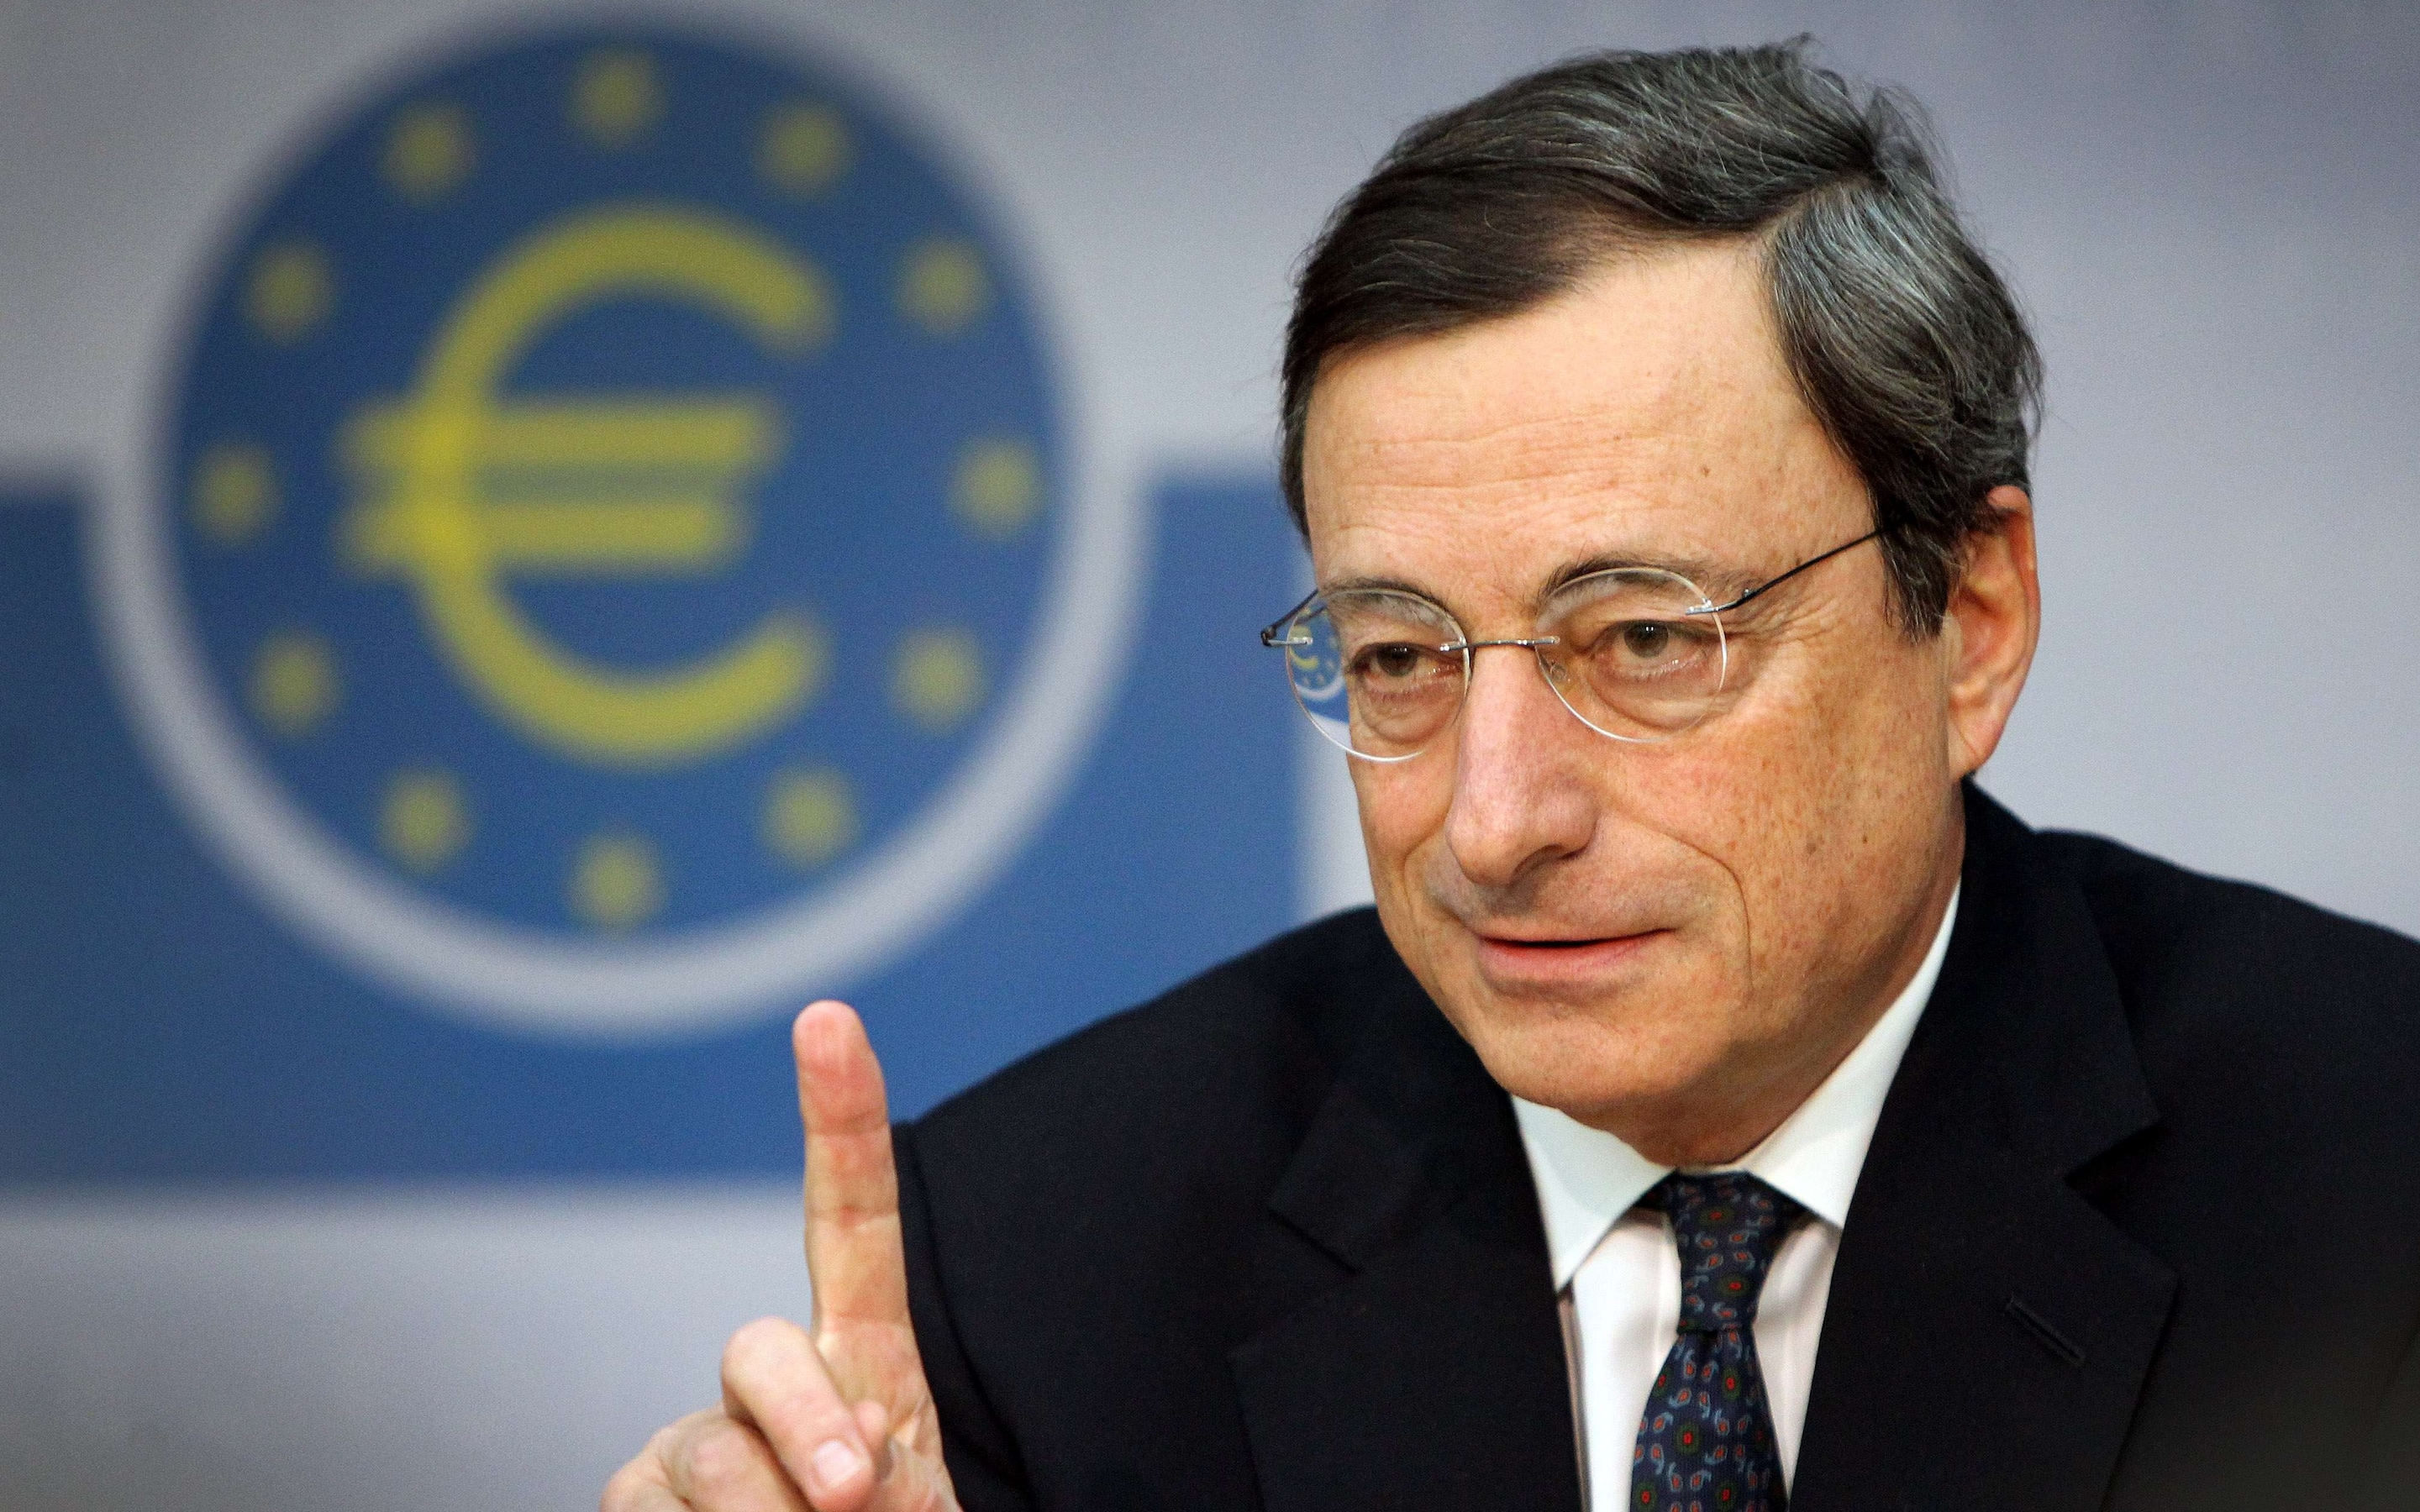 Image result for Mario Draghi, photos